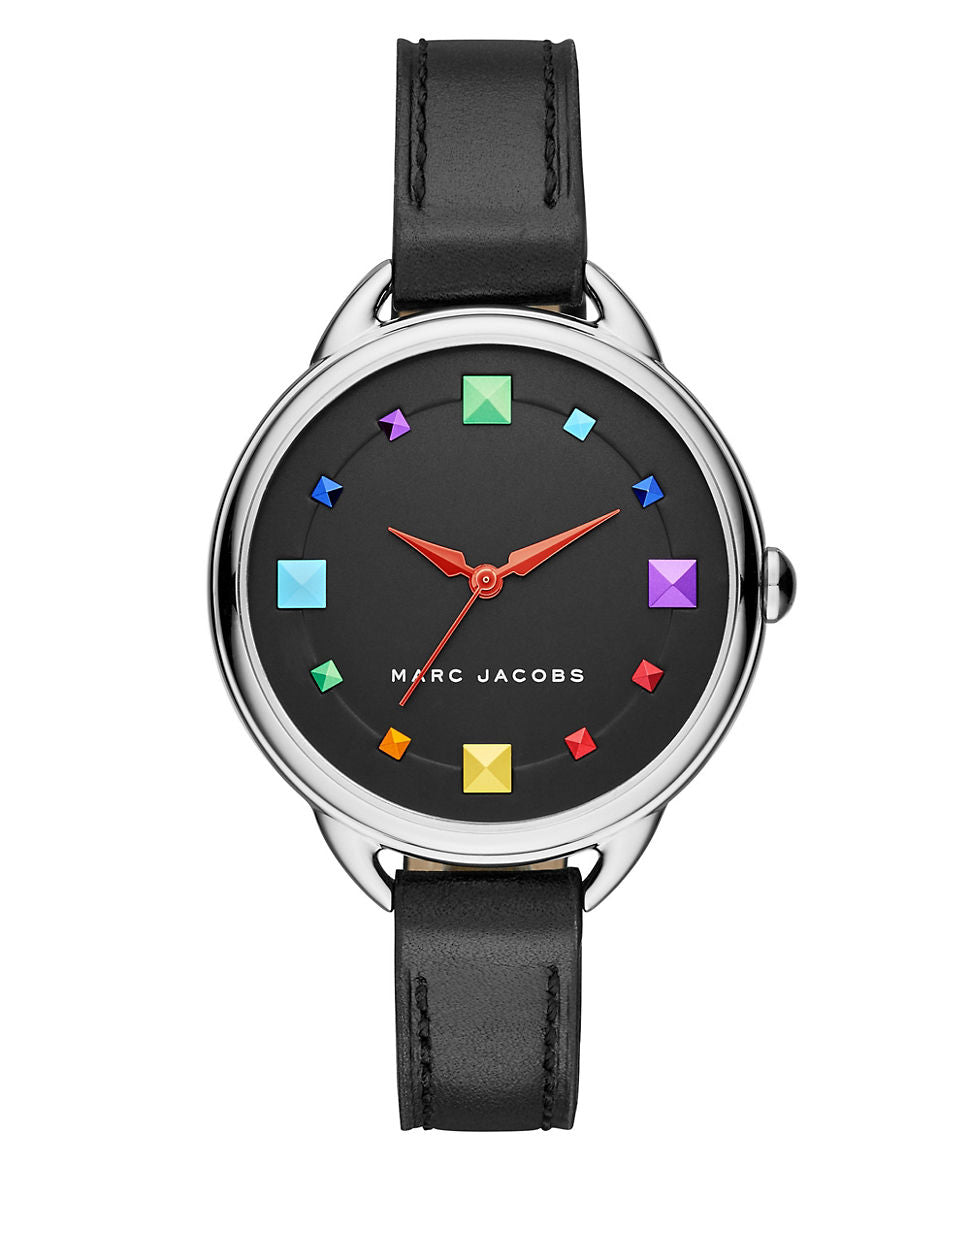 MARC JACOBS Betty Stainless Steel Black Leather Strap Watch